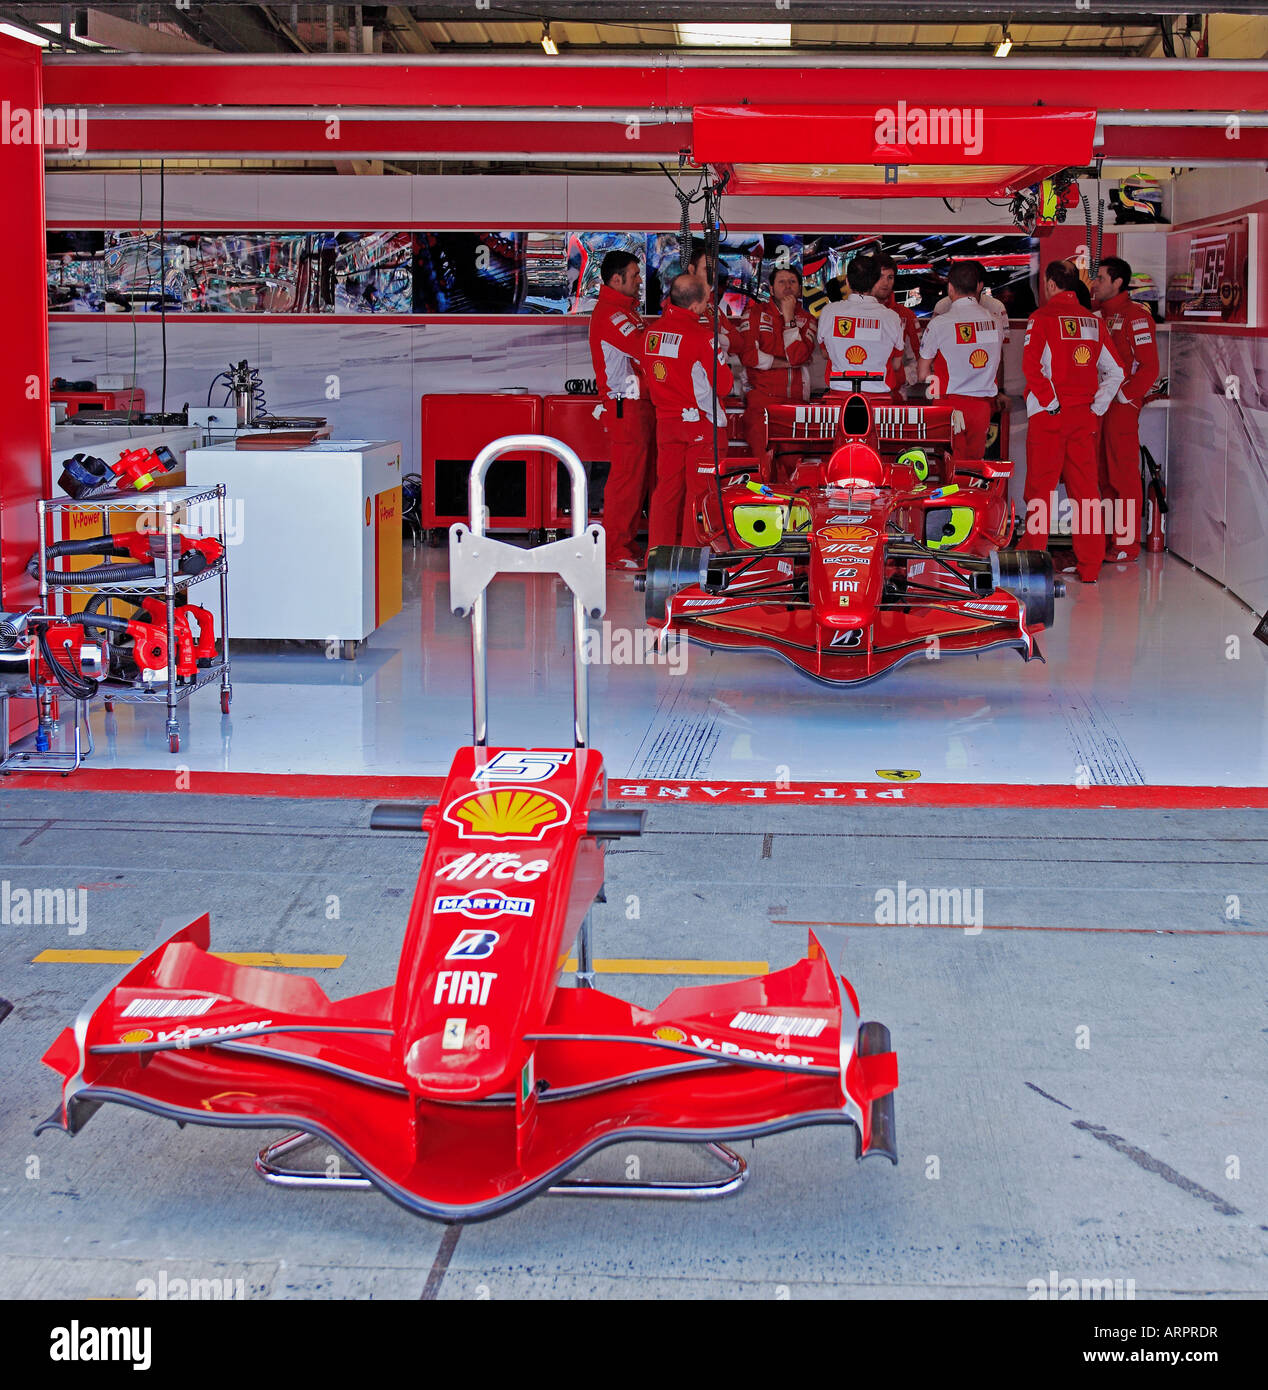 Heres What Happened With The Botched F1 Pit Stop That